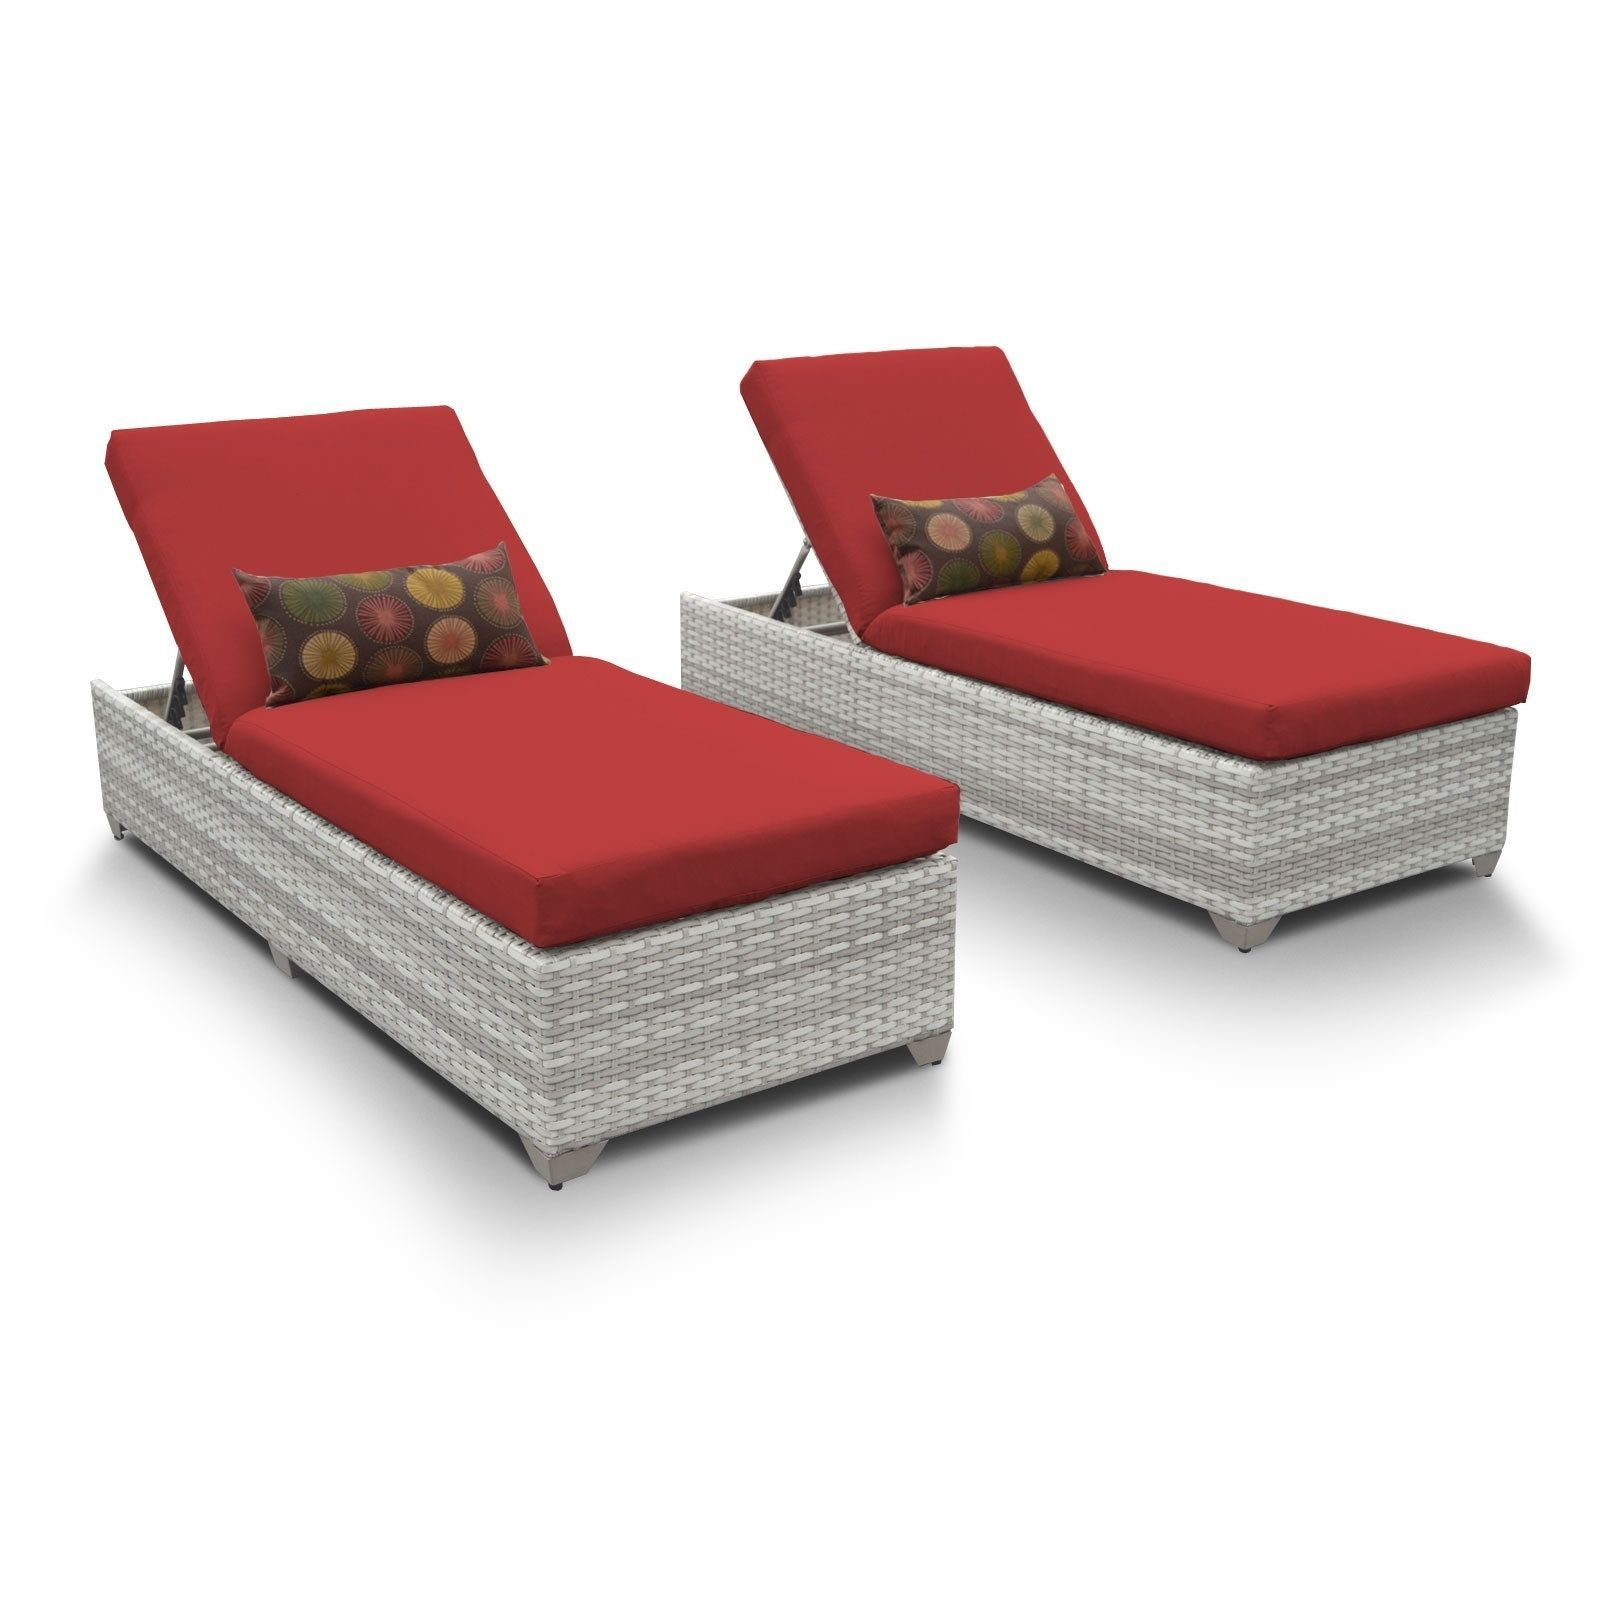 Outdoor Home Catamaran Wicker Outdoor Patio Chaise Lounge Set of